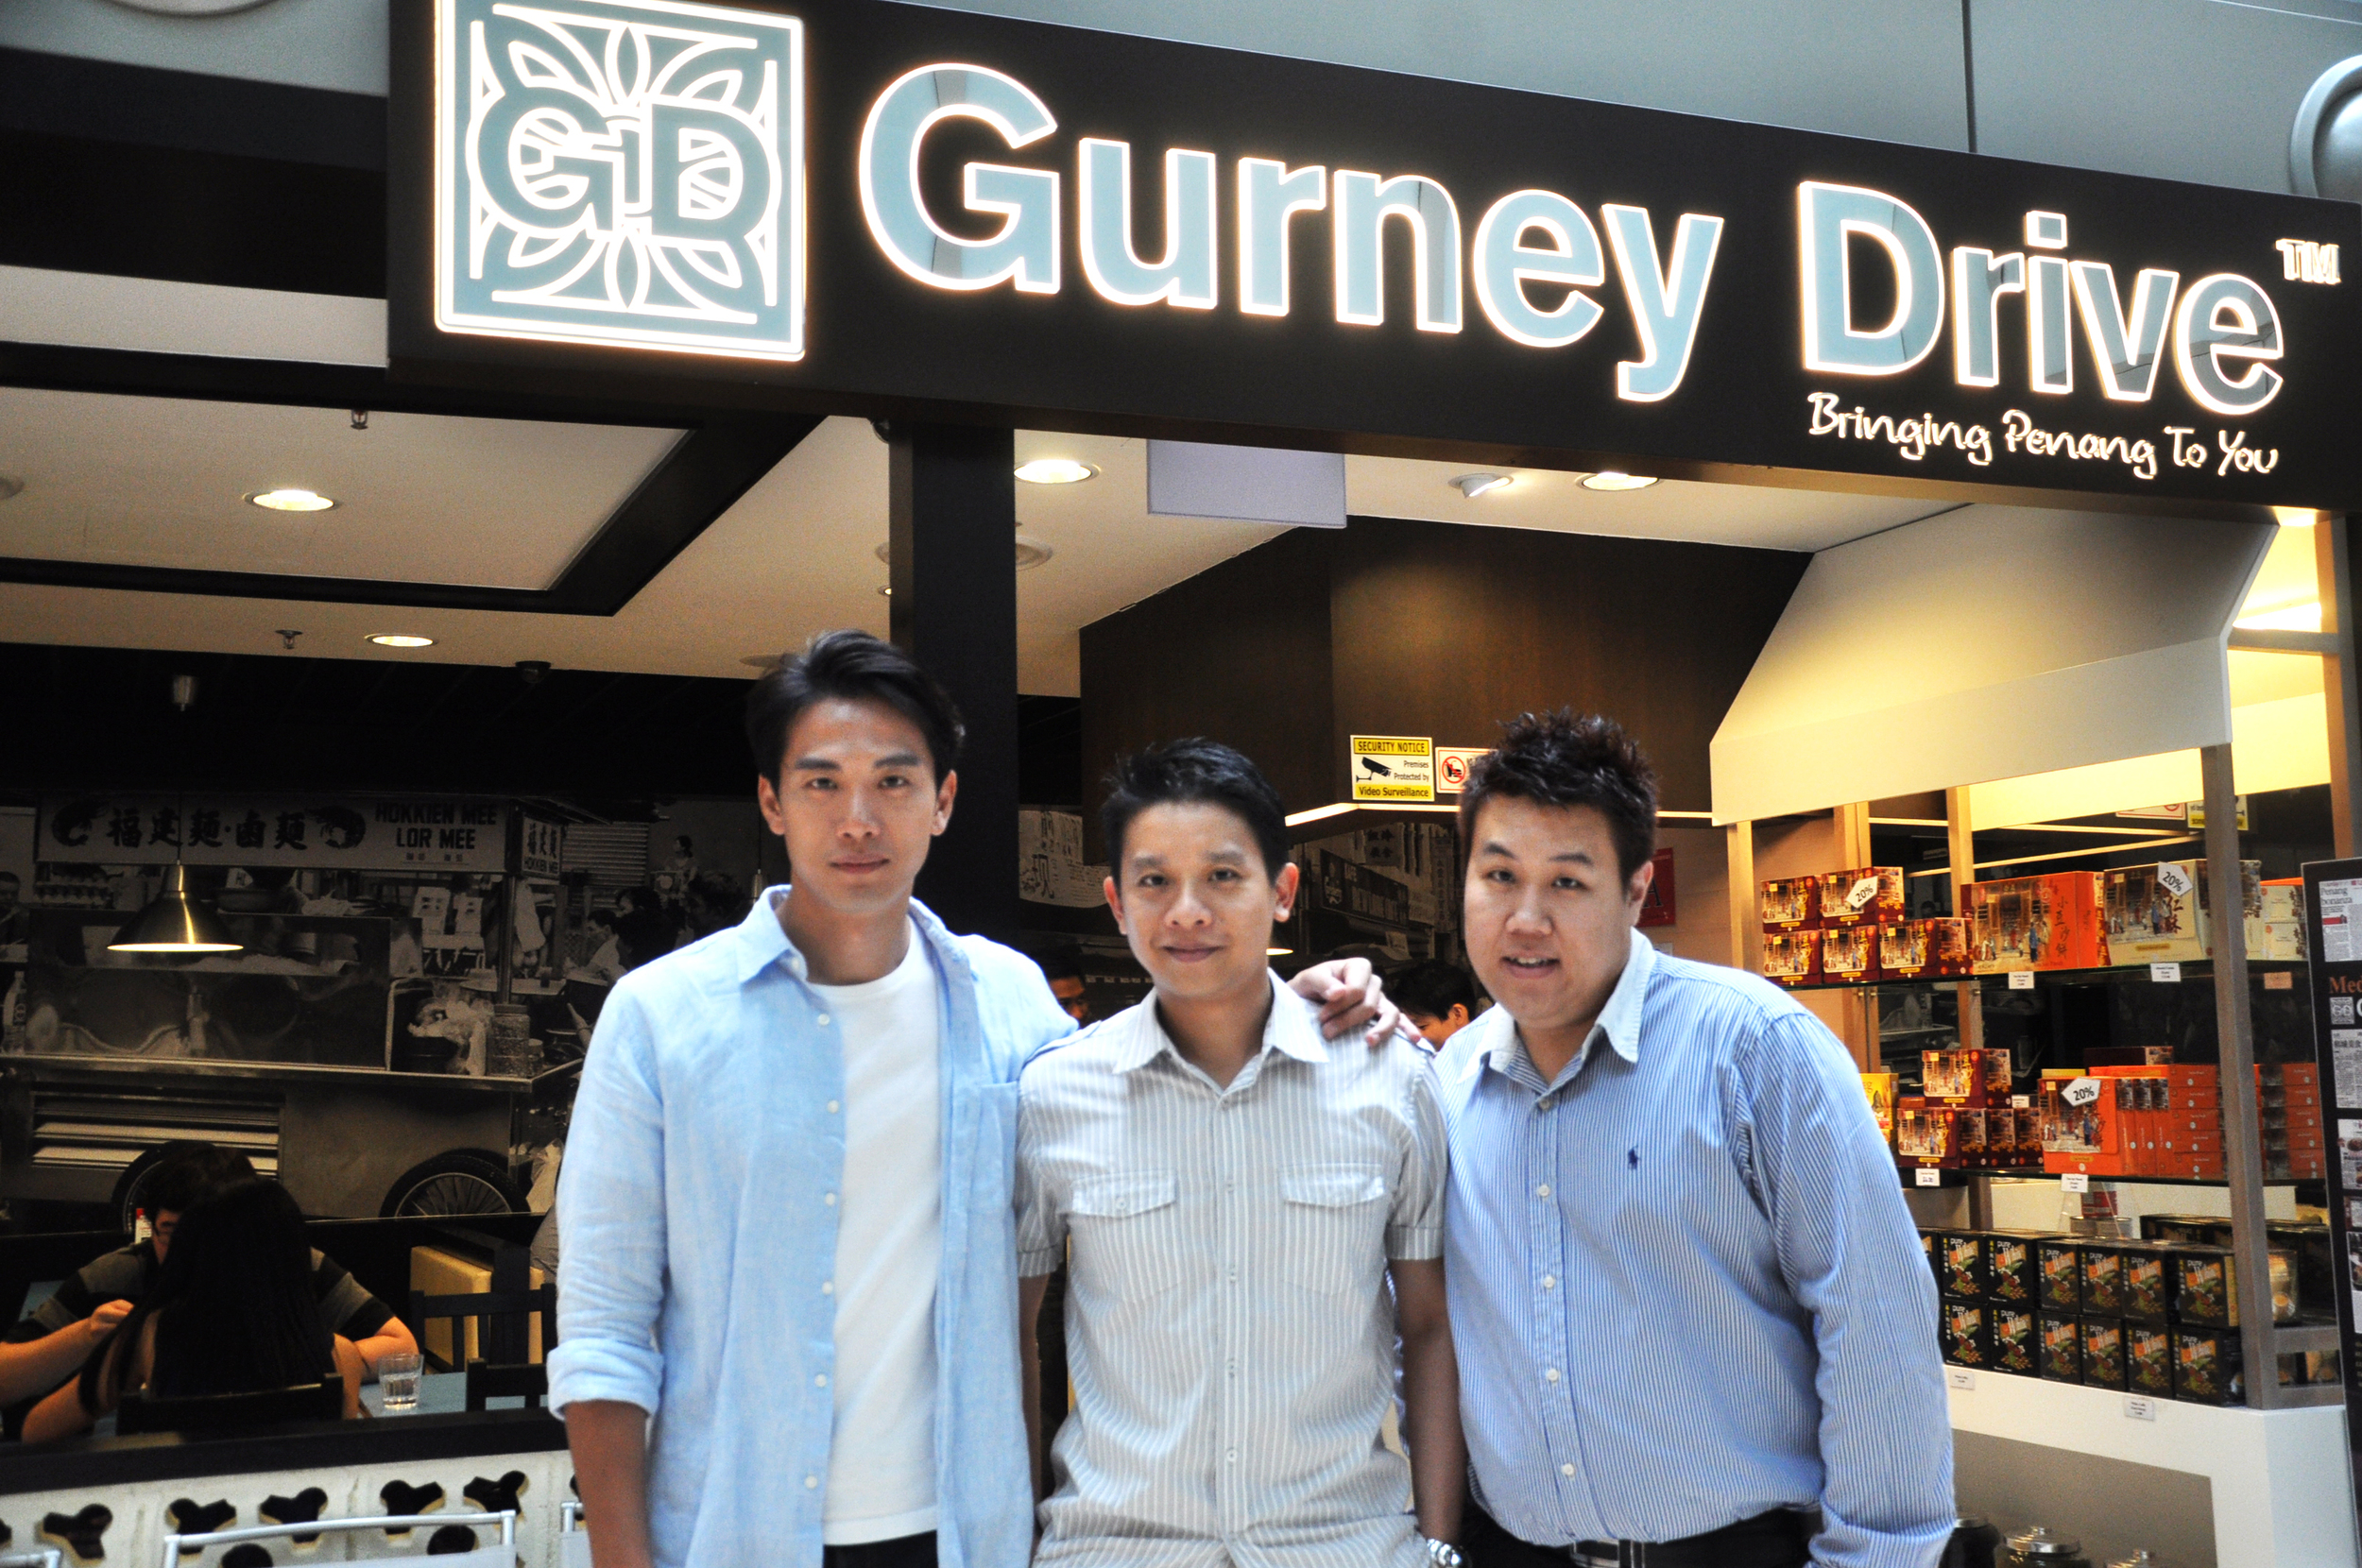 Our founders, Ven & Ricky Shawn, with Mediacorp Artiste Qi Yiwu